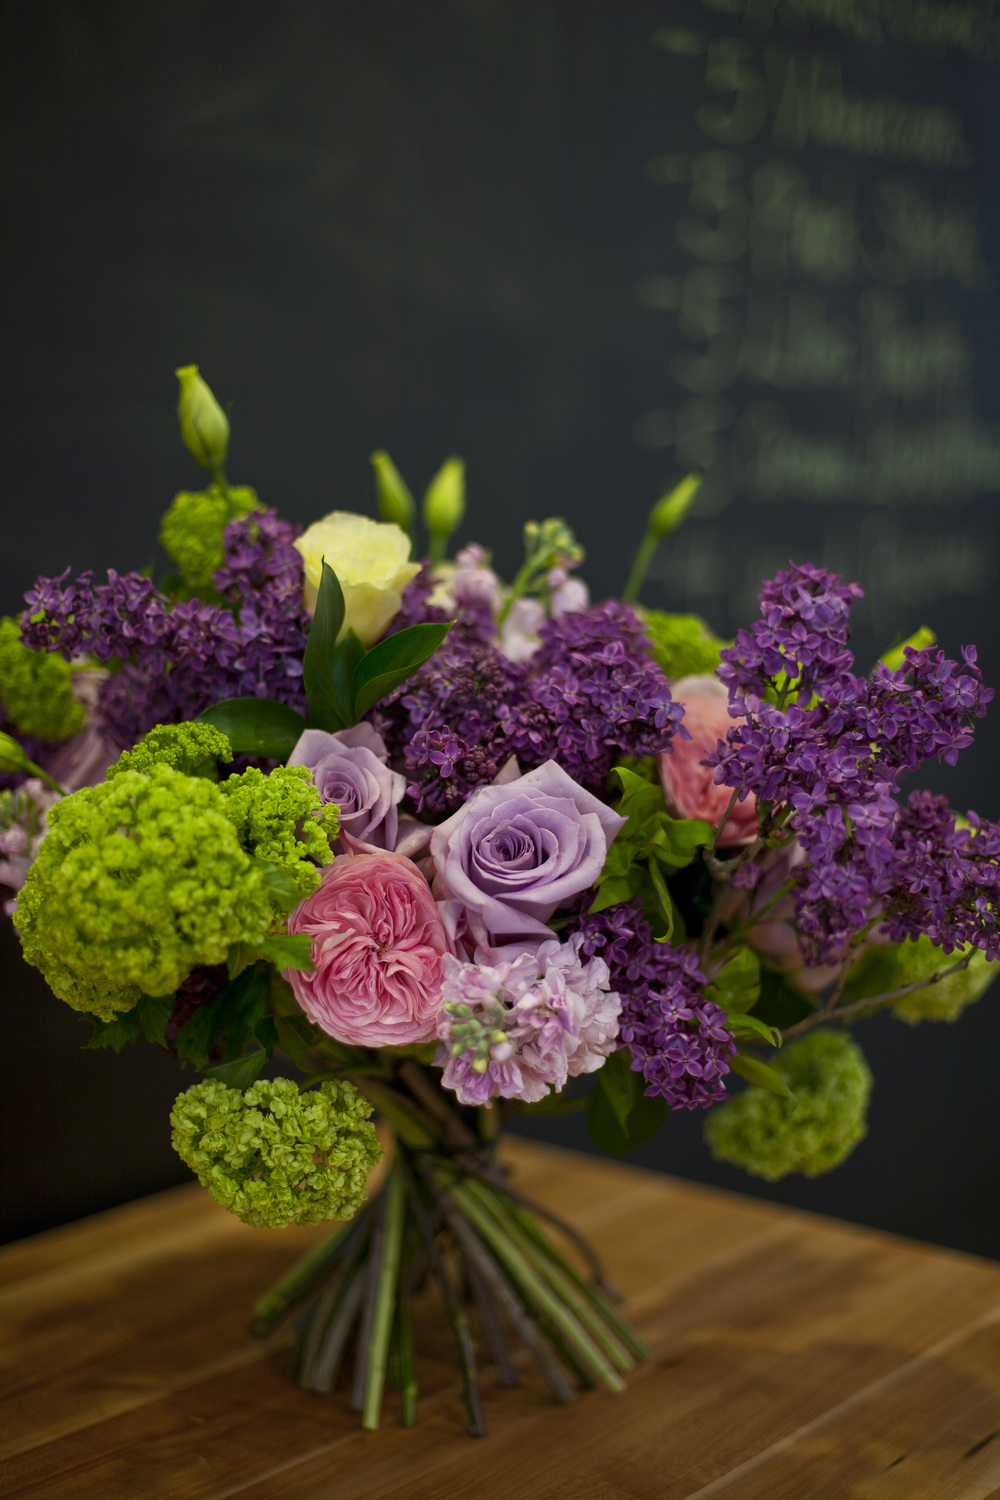 FlowerSchool NY Cool Stuff Manhattan New York City.JPG